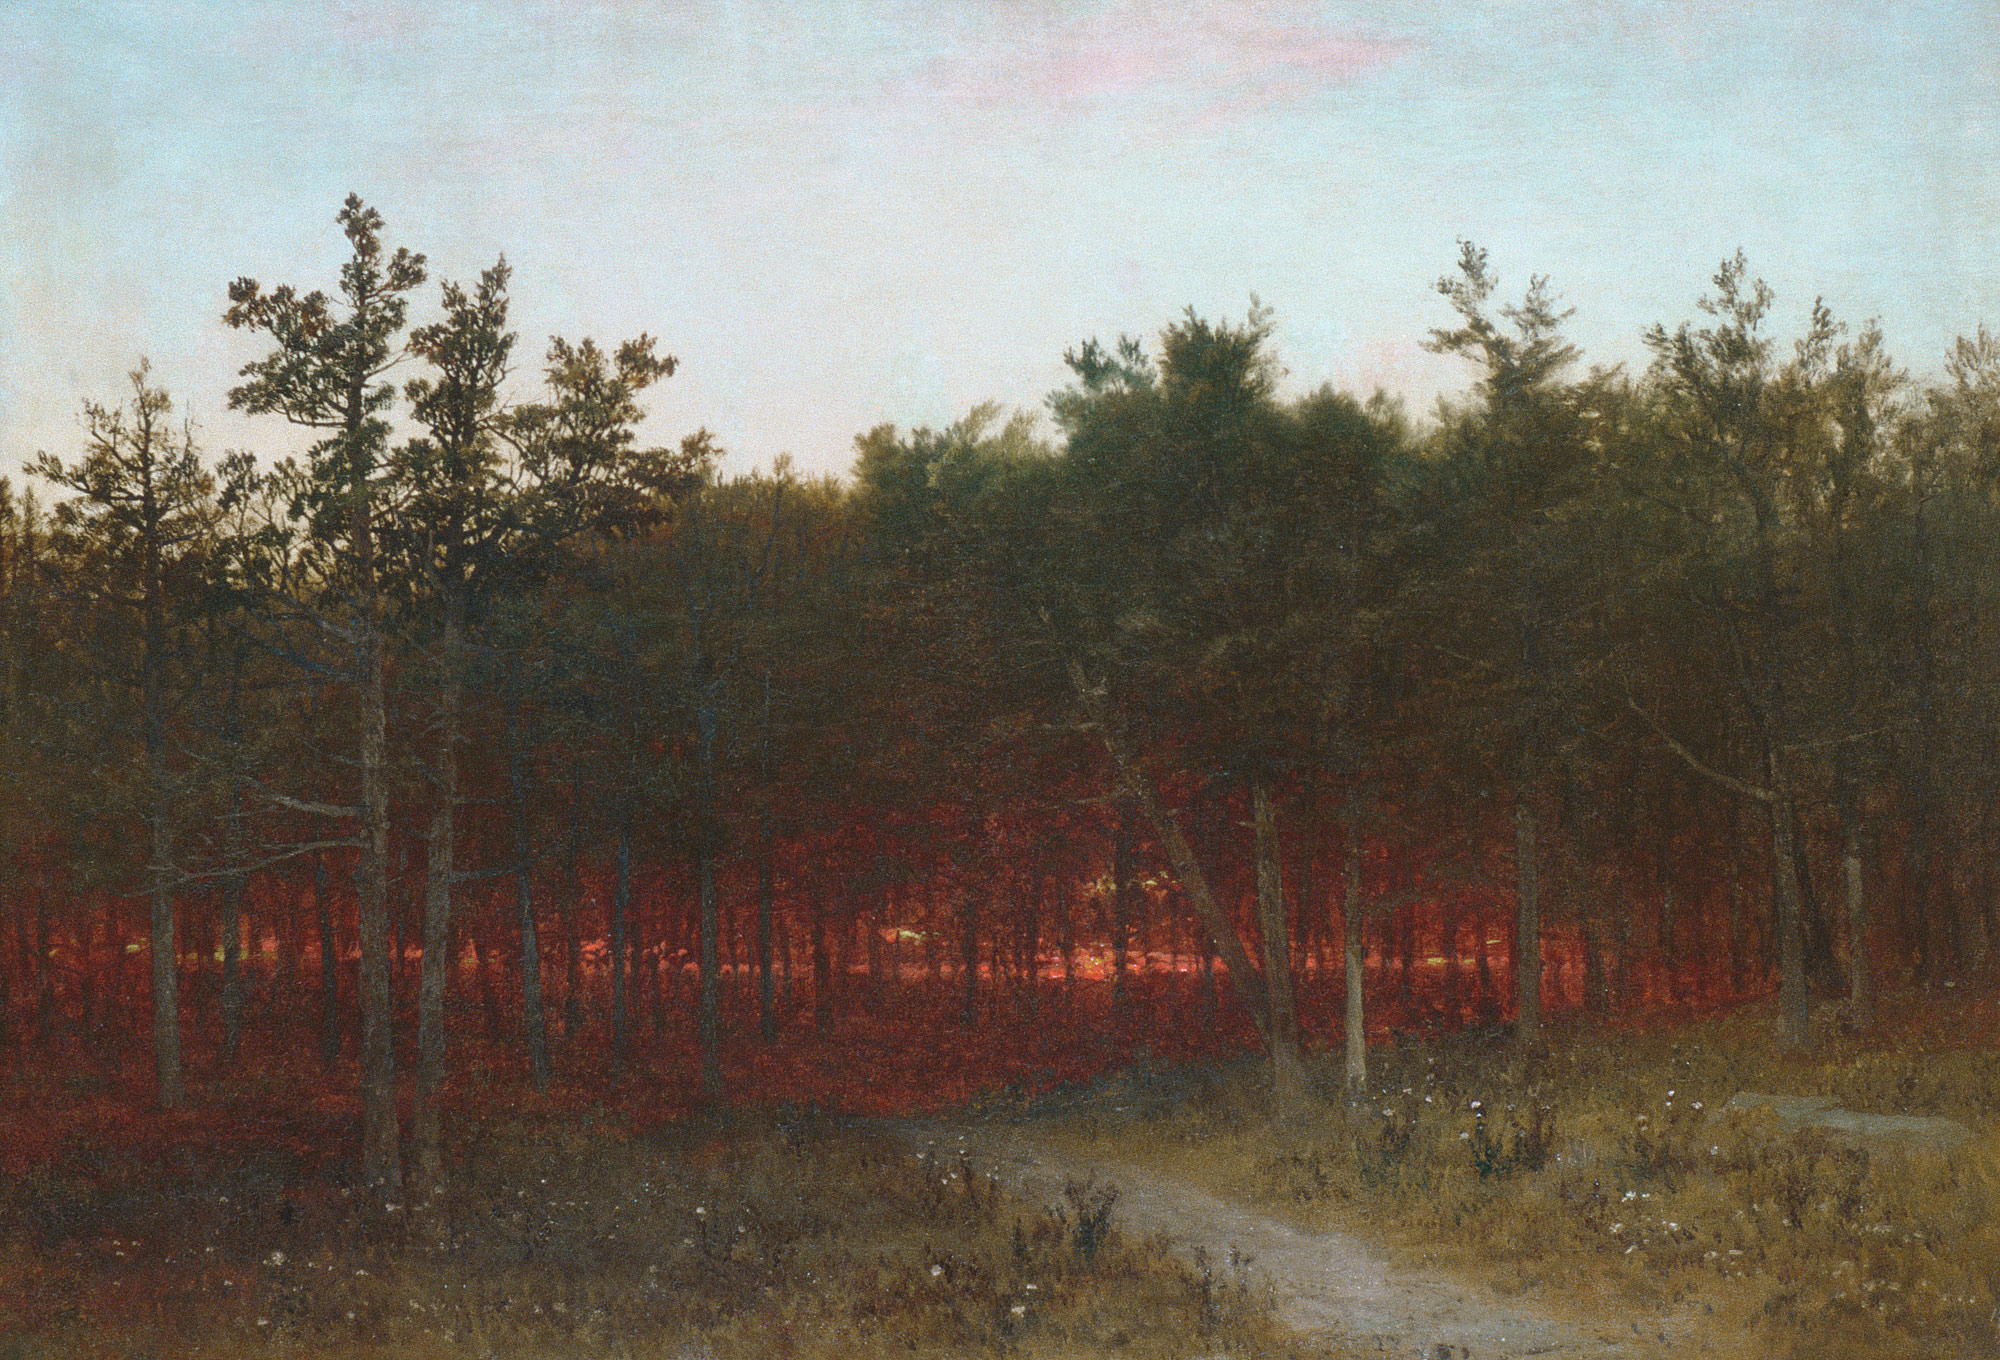 Twilight in the Cedars at Darien, Connecticut